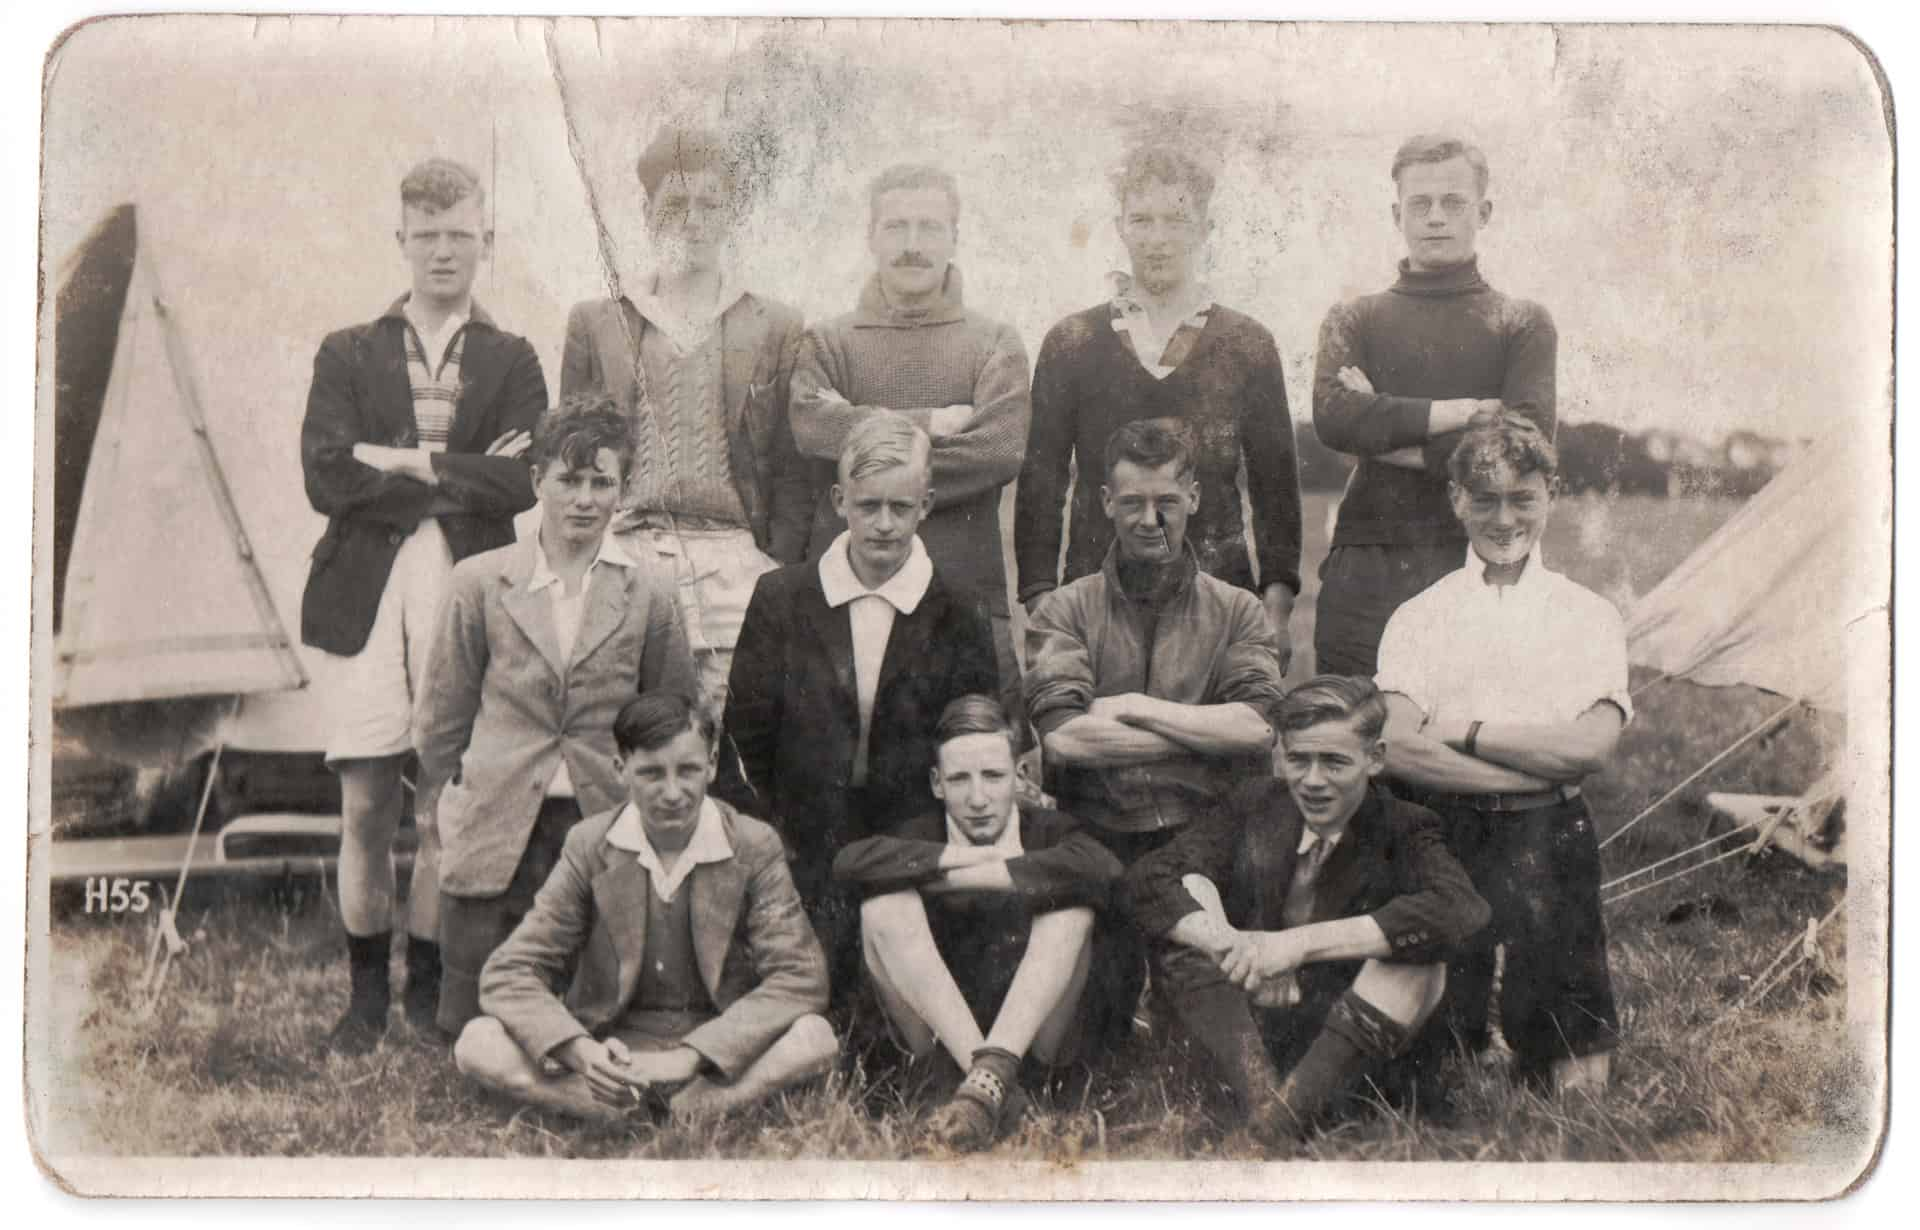 A football team photograph probably dating from about 1934-35. Bill played centre-forward for the works team at K&J.  He is back-row on the left in this photograph.